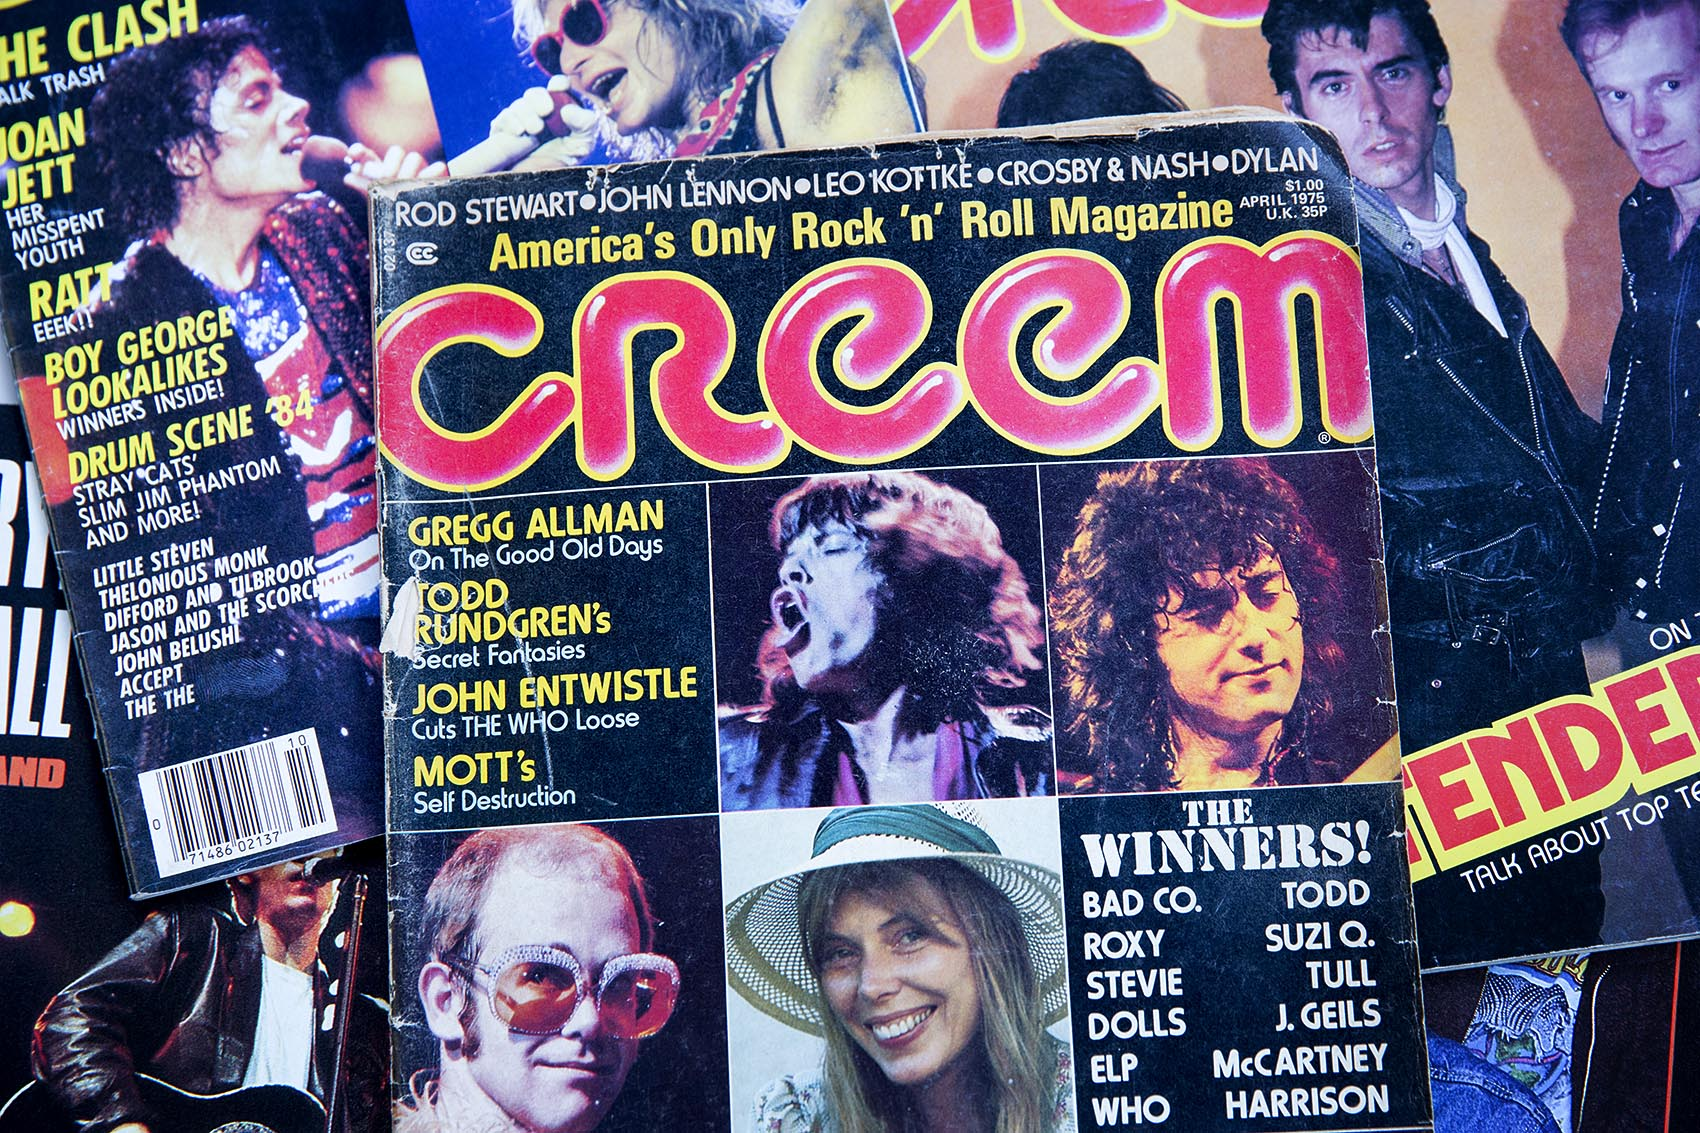 Copies of rock 'n' roll magazine Creem from 1975. (Robin Lubbock/WBUR)